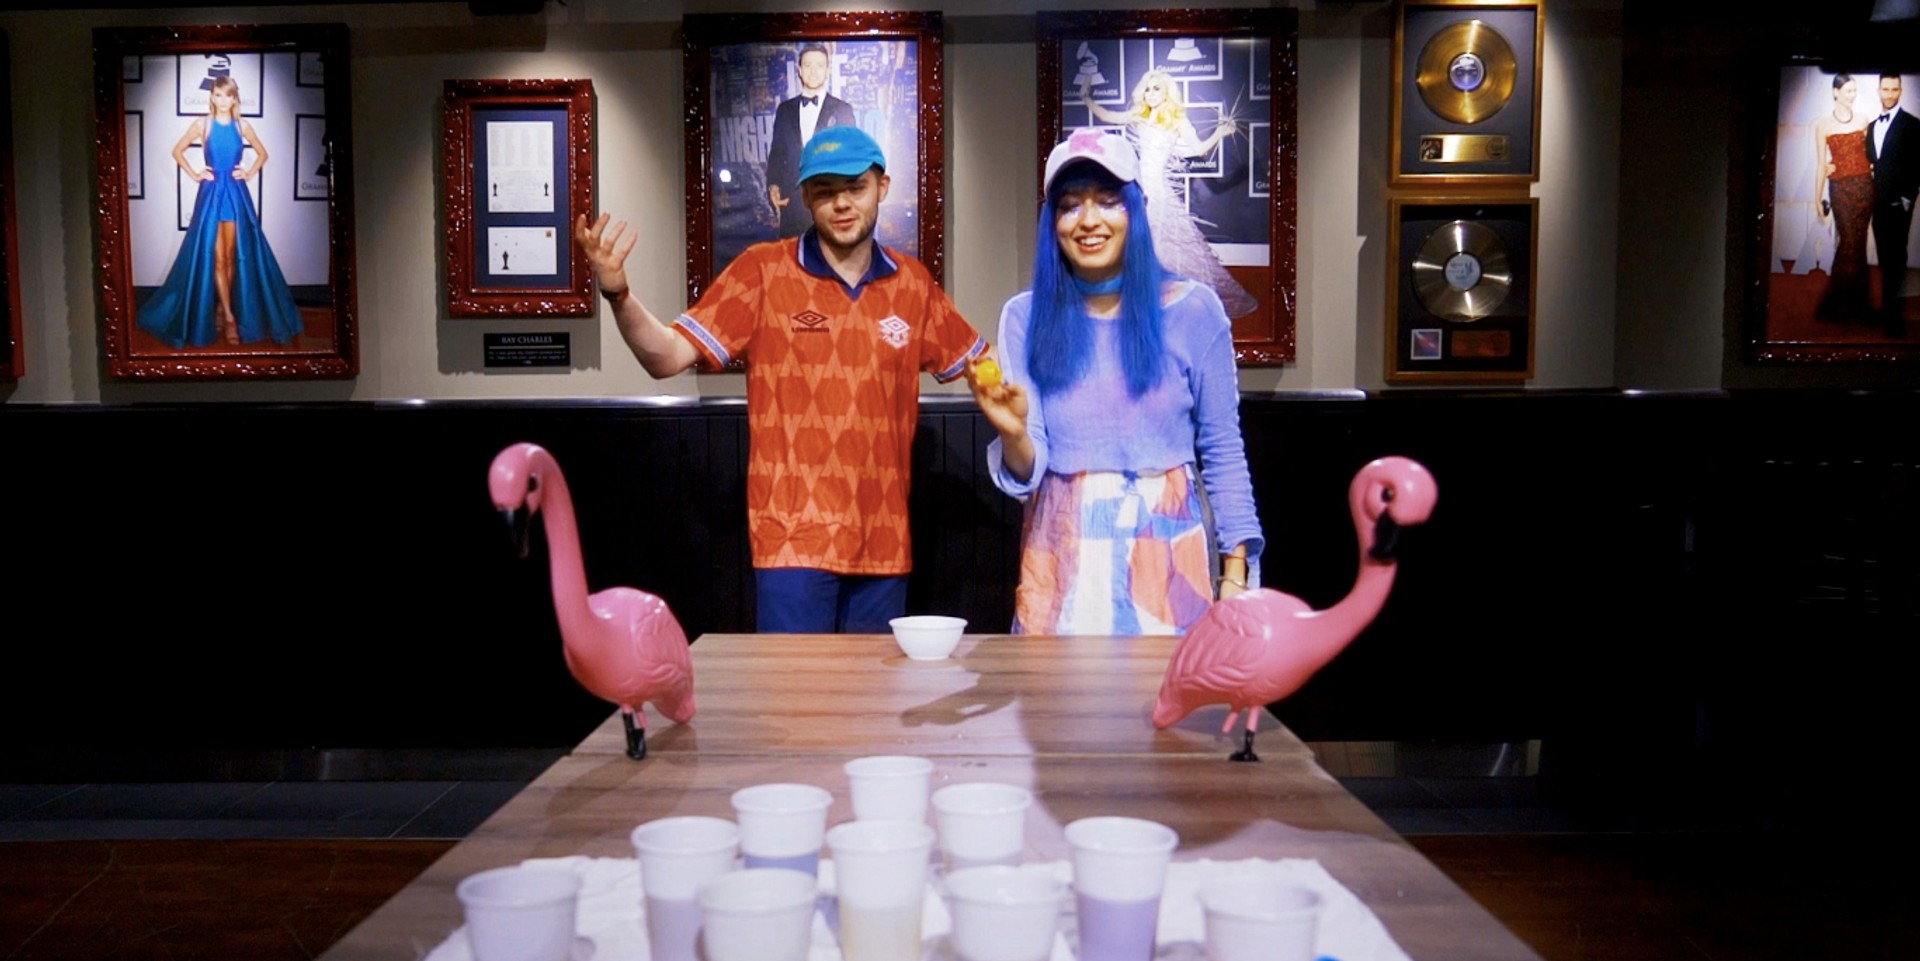 WATCH: Kero Kero Bonito play Teh Pong while sharing about their biggest obstacle so far